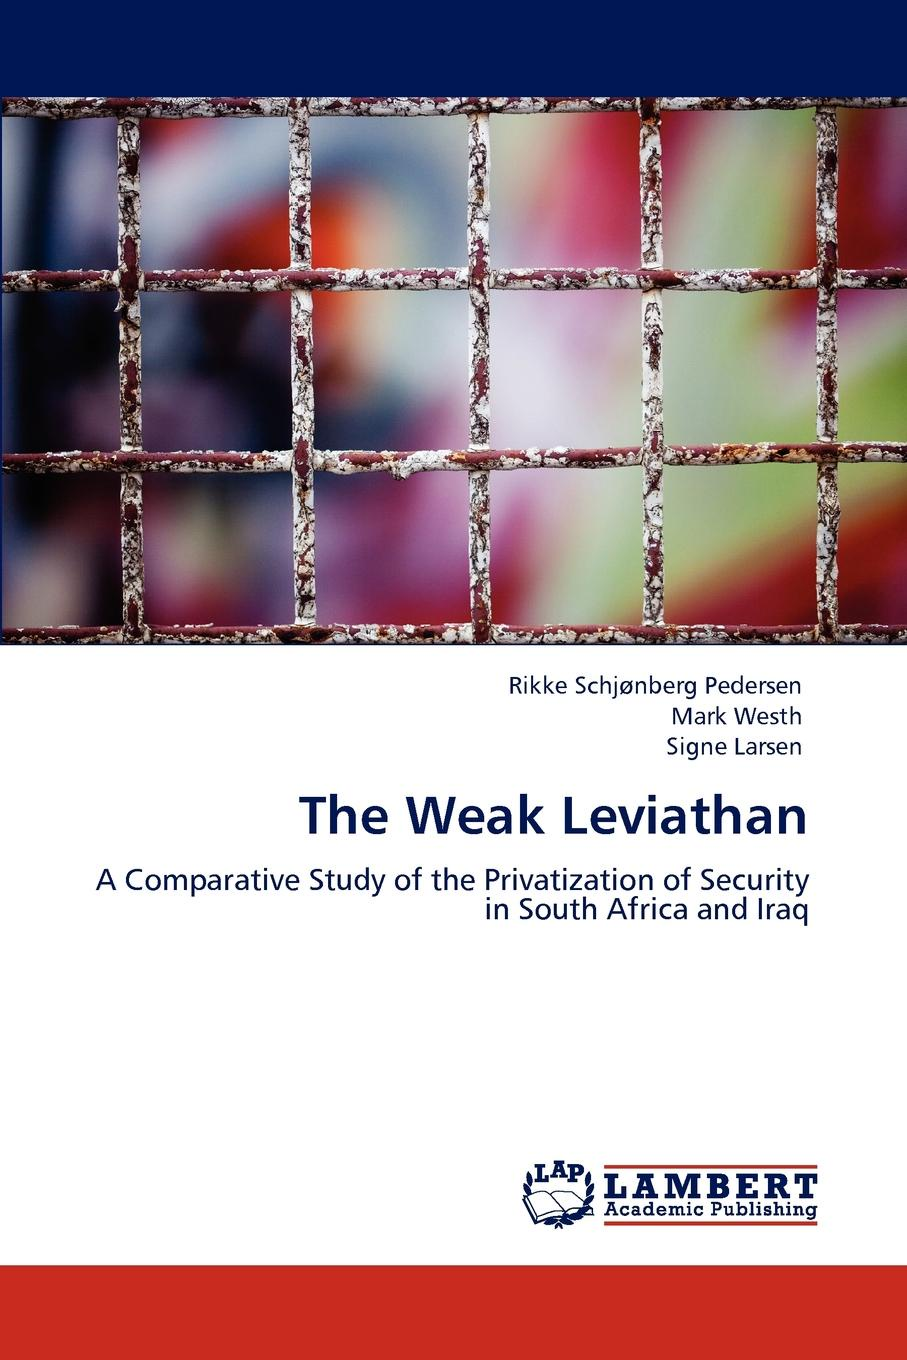 Rikke Schj Pedersen, Mark Westh, Signe Larsen The Weak Leviathan private military security companies